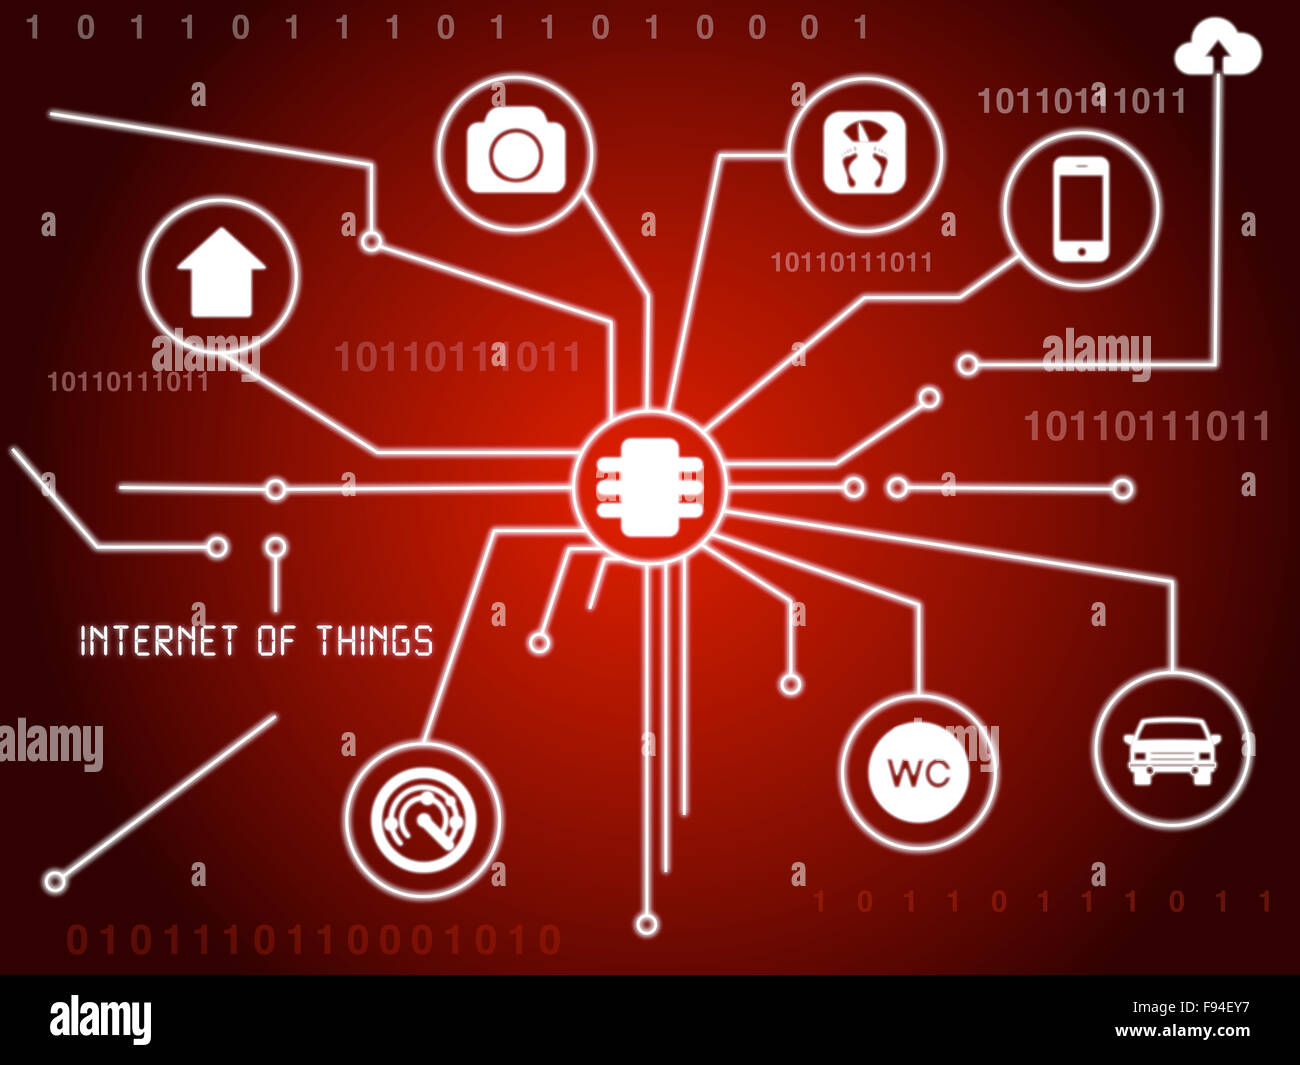 The internet of things concept illustration as a red circuit board - Stock Image